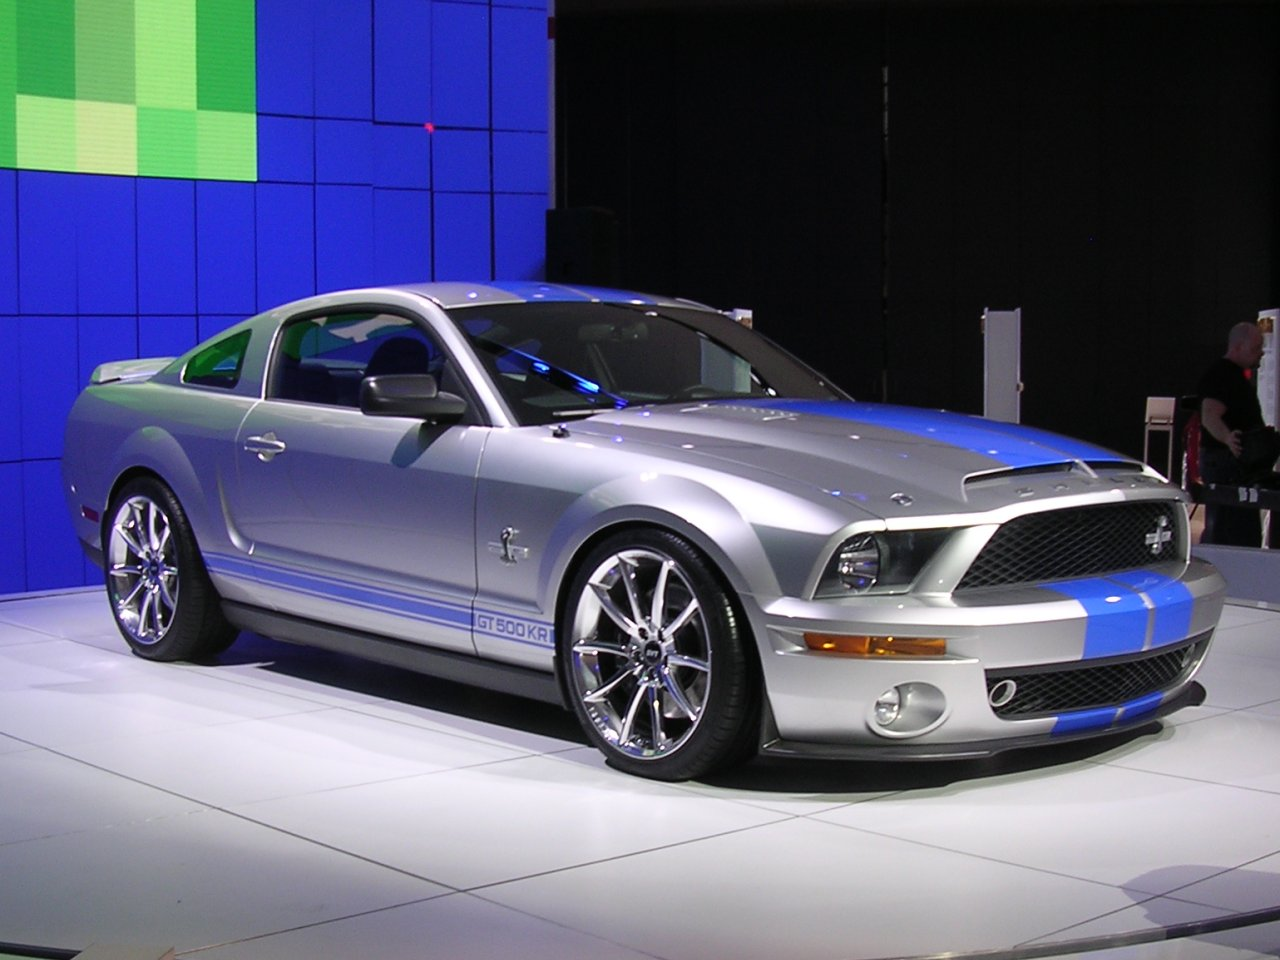 07 mustang shelby: